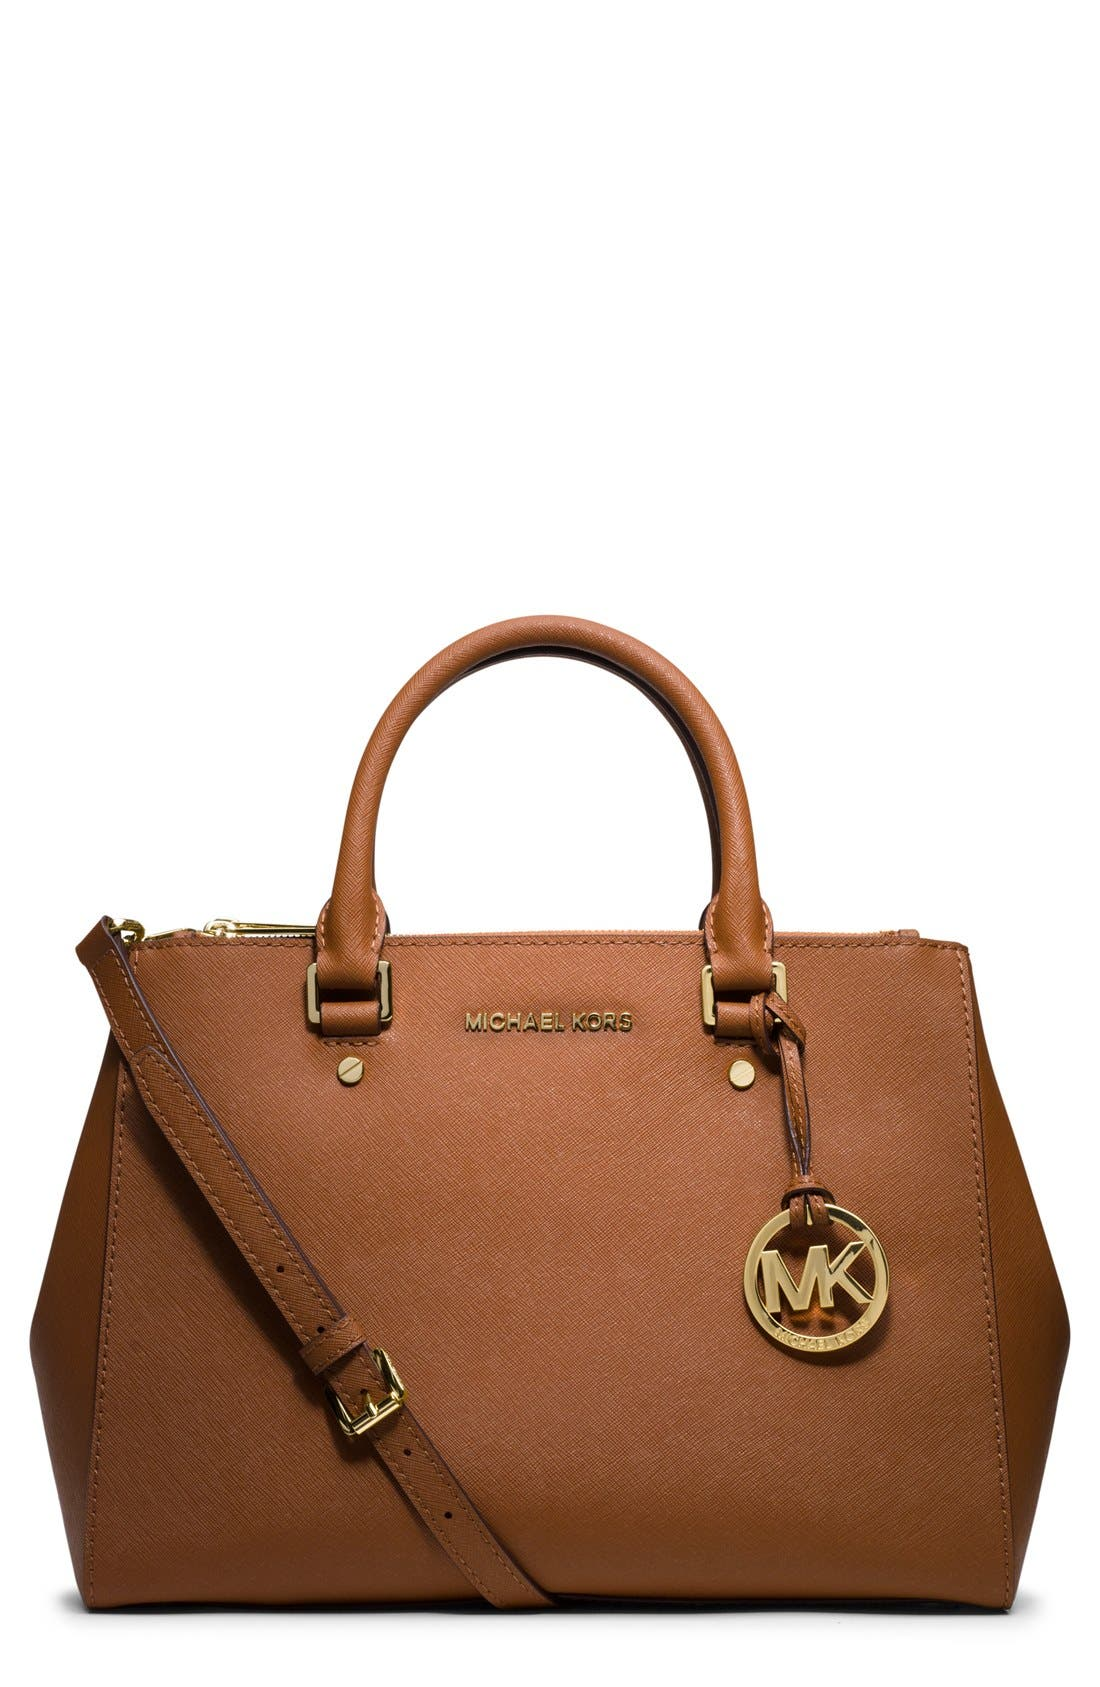 Main Image - MICHAEL Michael Kors 'Medium Sutton' Saffiano Leather Tote